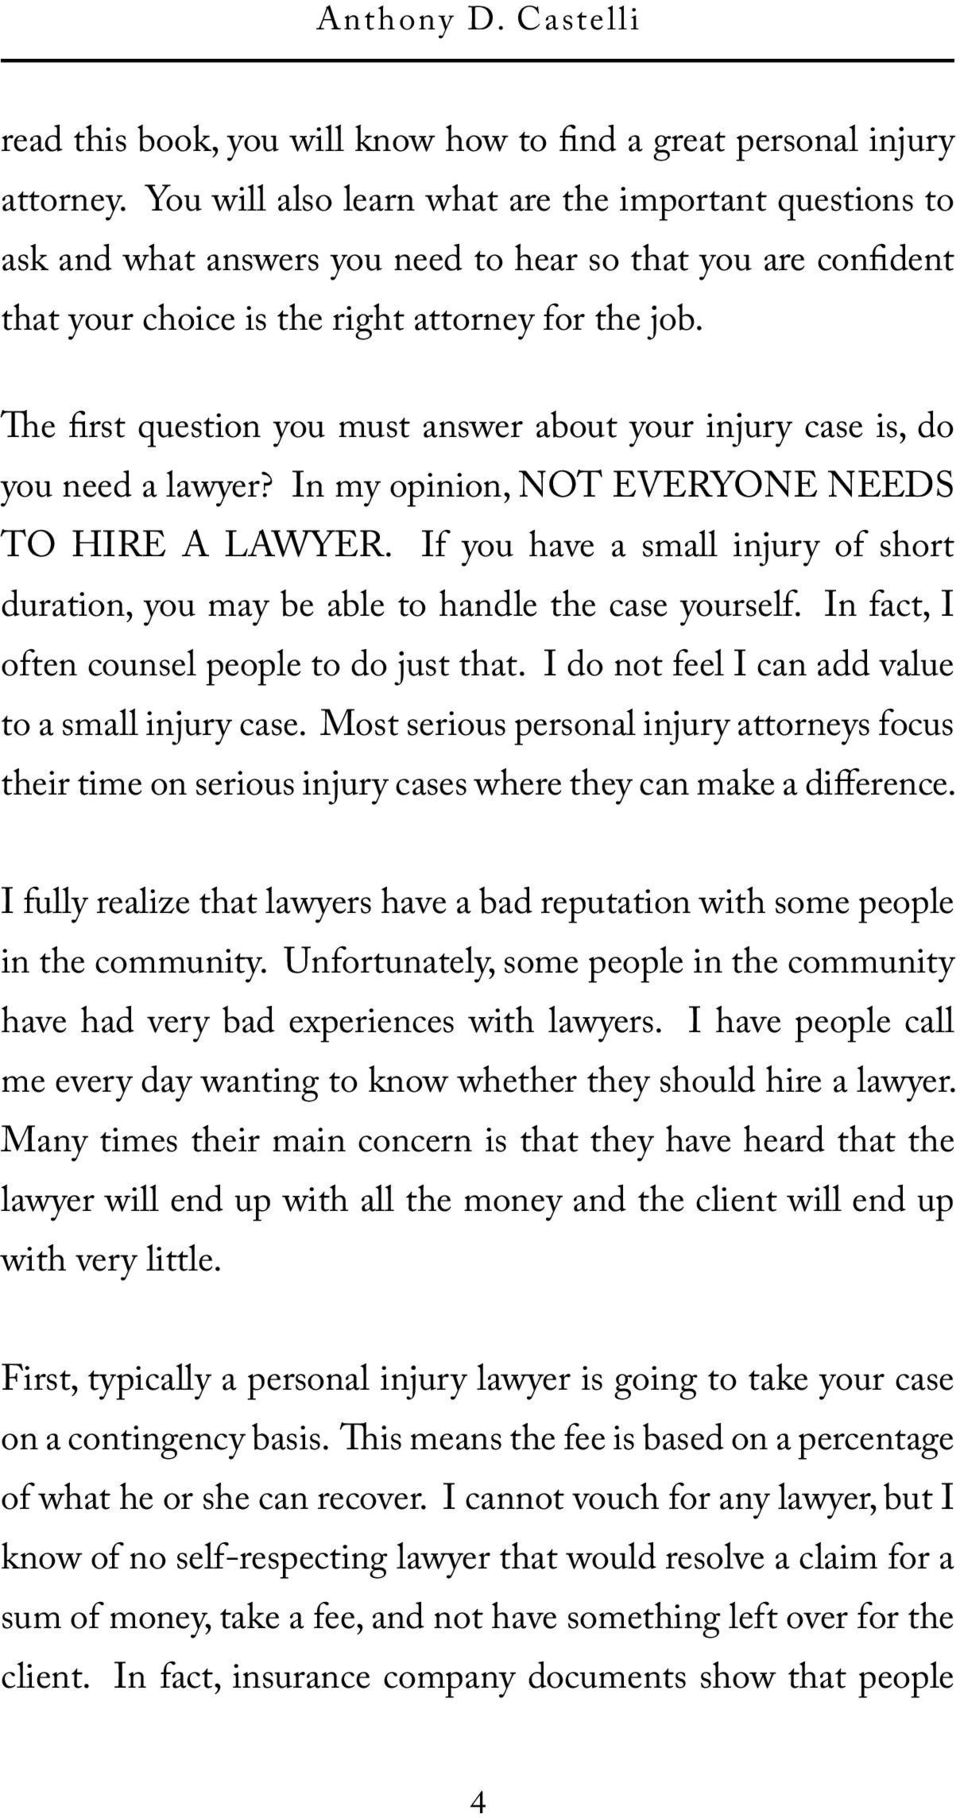 The first question you must answer about your injury case is, do you need a lawyer? In my opinion, NOT EVERYONE NEEDS TO HIRE A LAWYER.